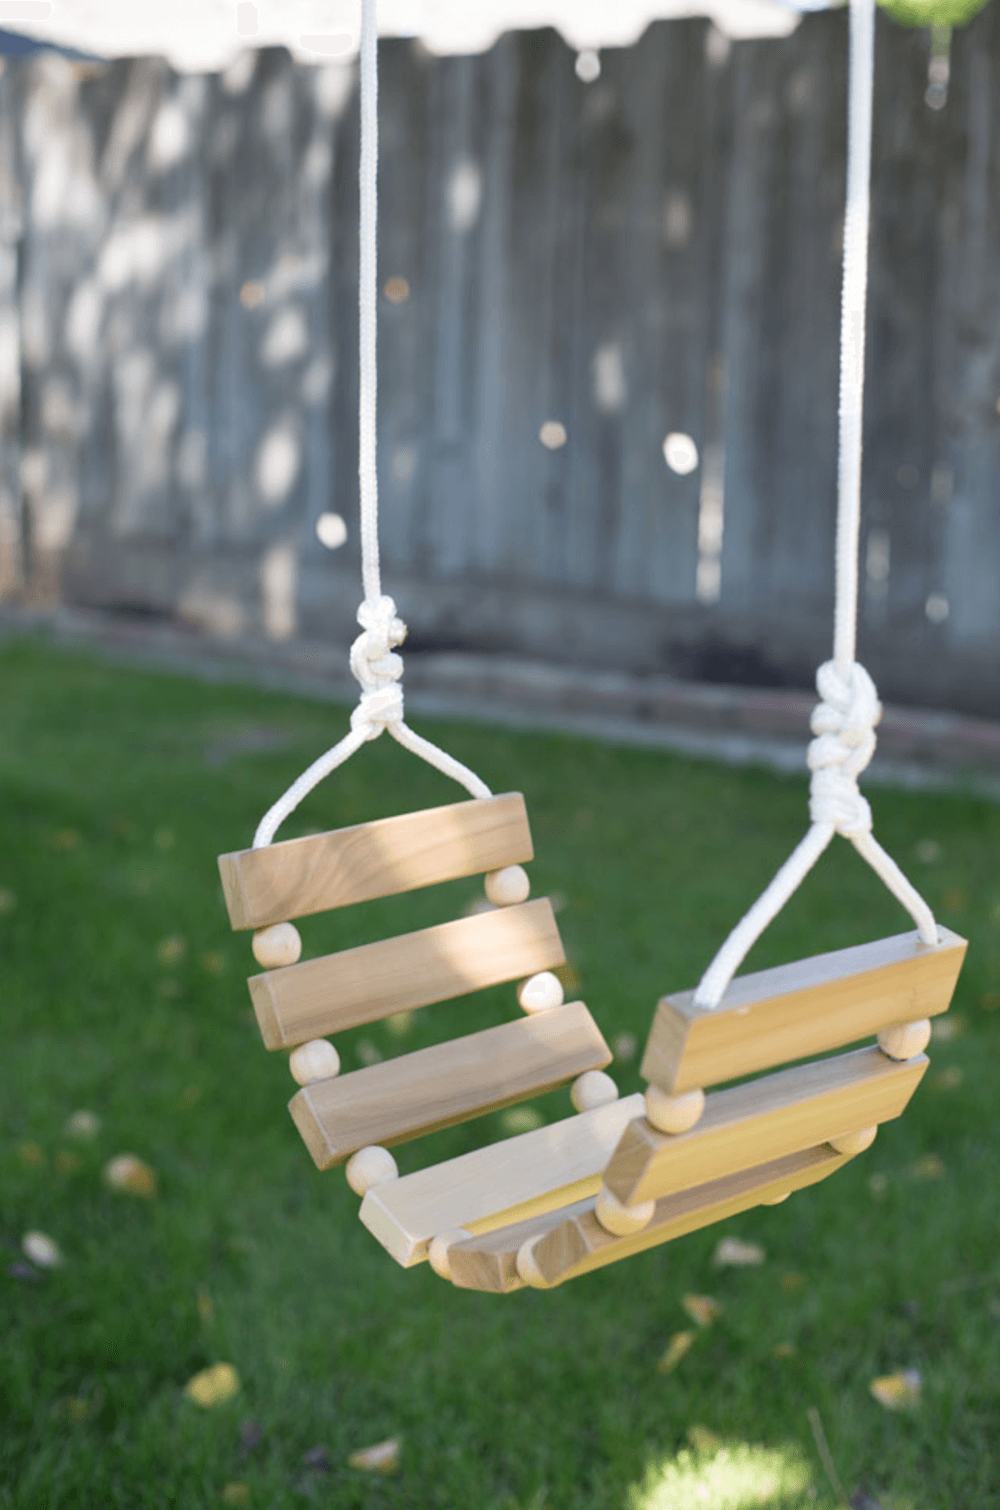 28. A Xylophone Style Swing For Little Ones